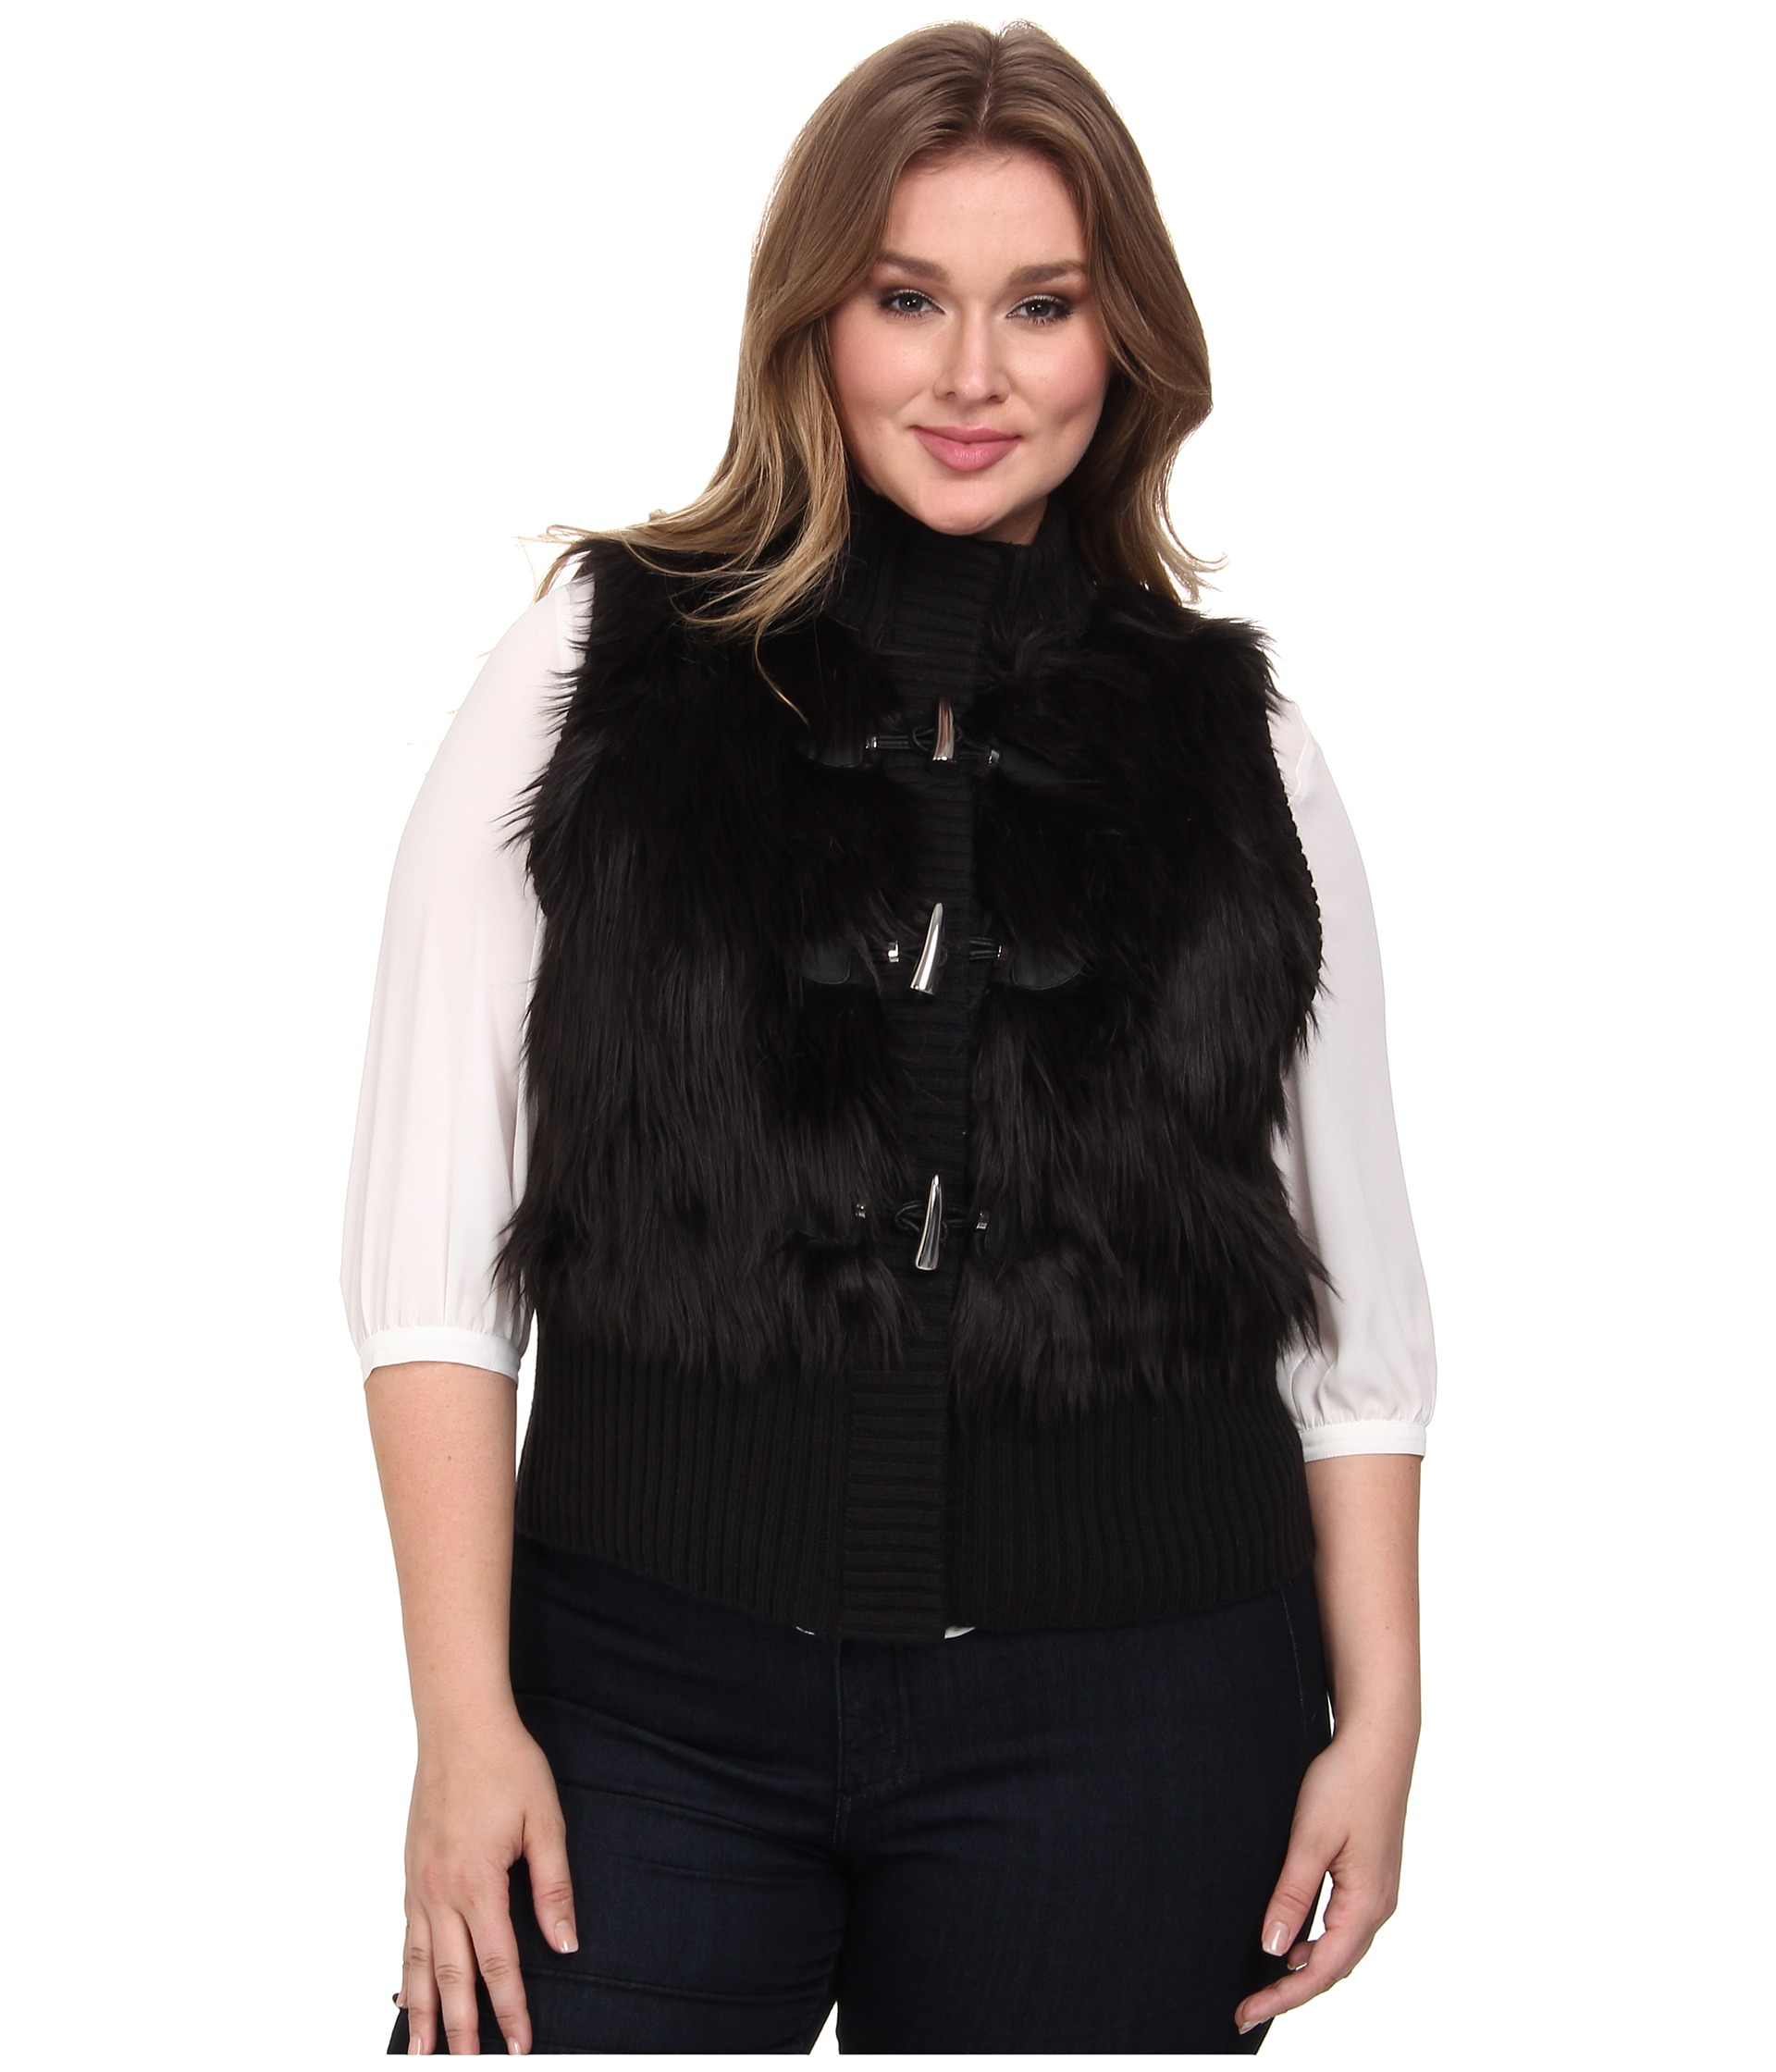 women s vests - fur vests, leather vests and denim vests Layering is a quick way to create new looks, and women's vests make it easier than ever. Throw a suede or shearling vest from Marc New York or cupcakes and cashmere over a simple T-shirt to instantly add texture and sophistication, or wear a cozy puffer vest from Canada Goose or The.